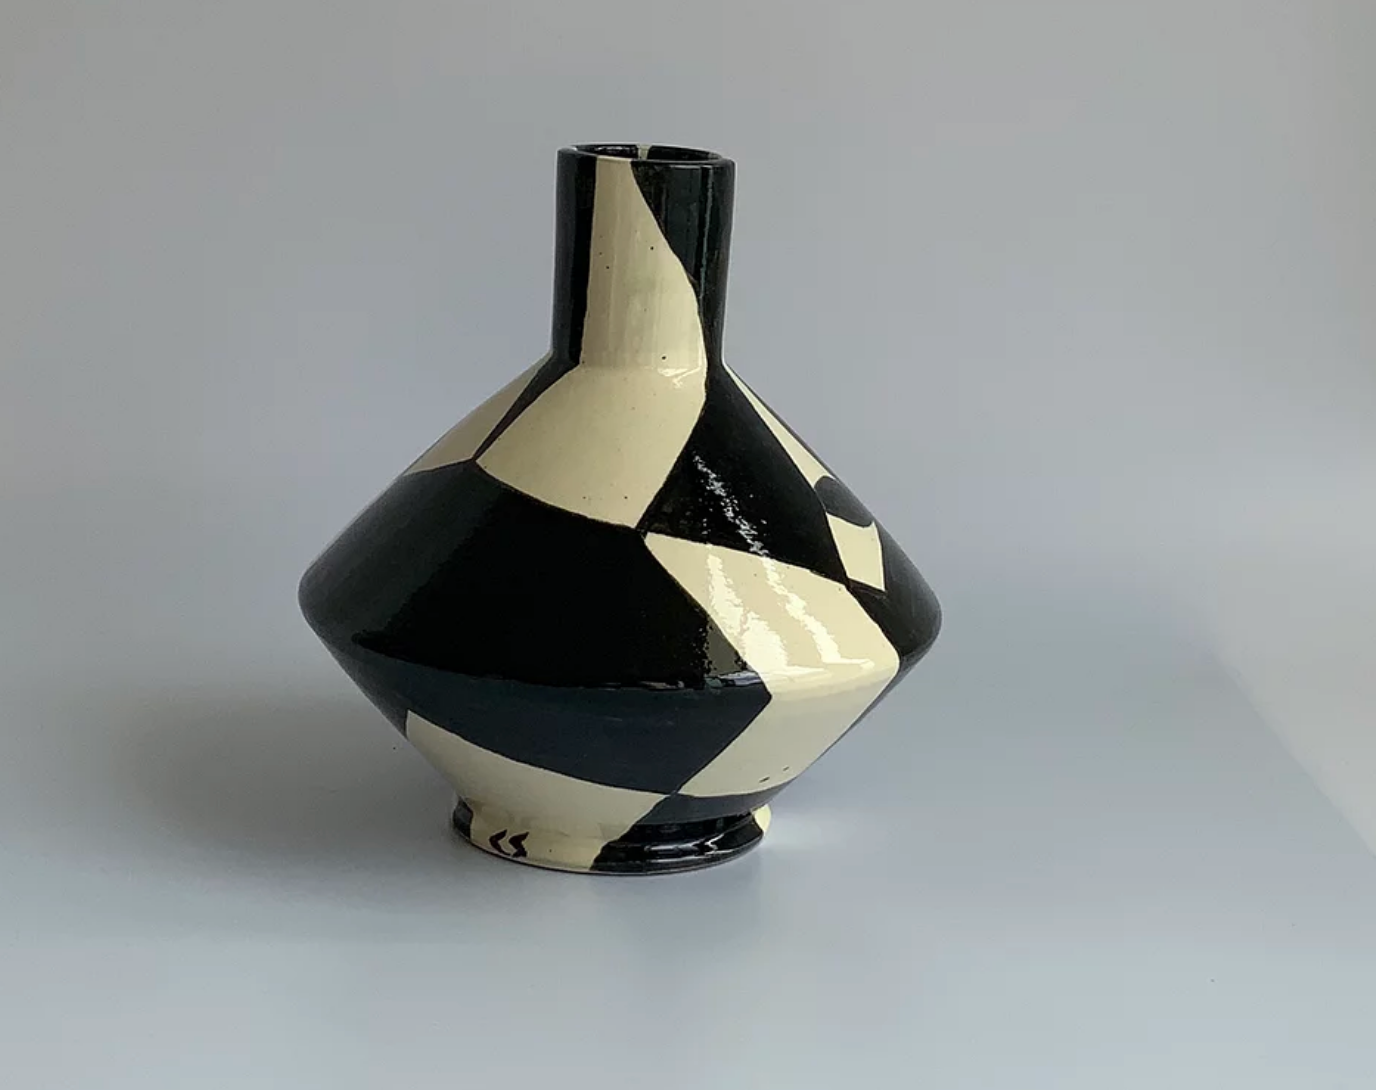 Napoli Vase Hand Painted, Psychomagic 24 cm tall